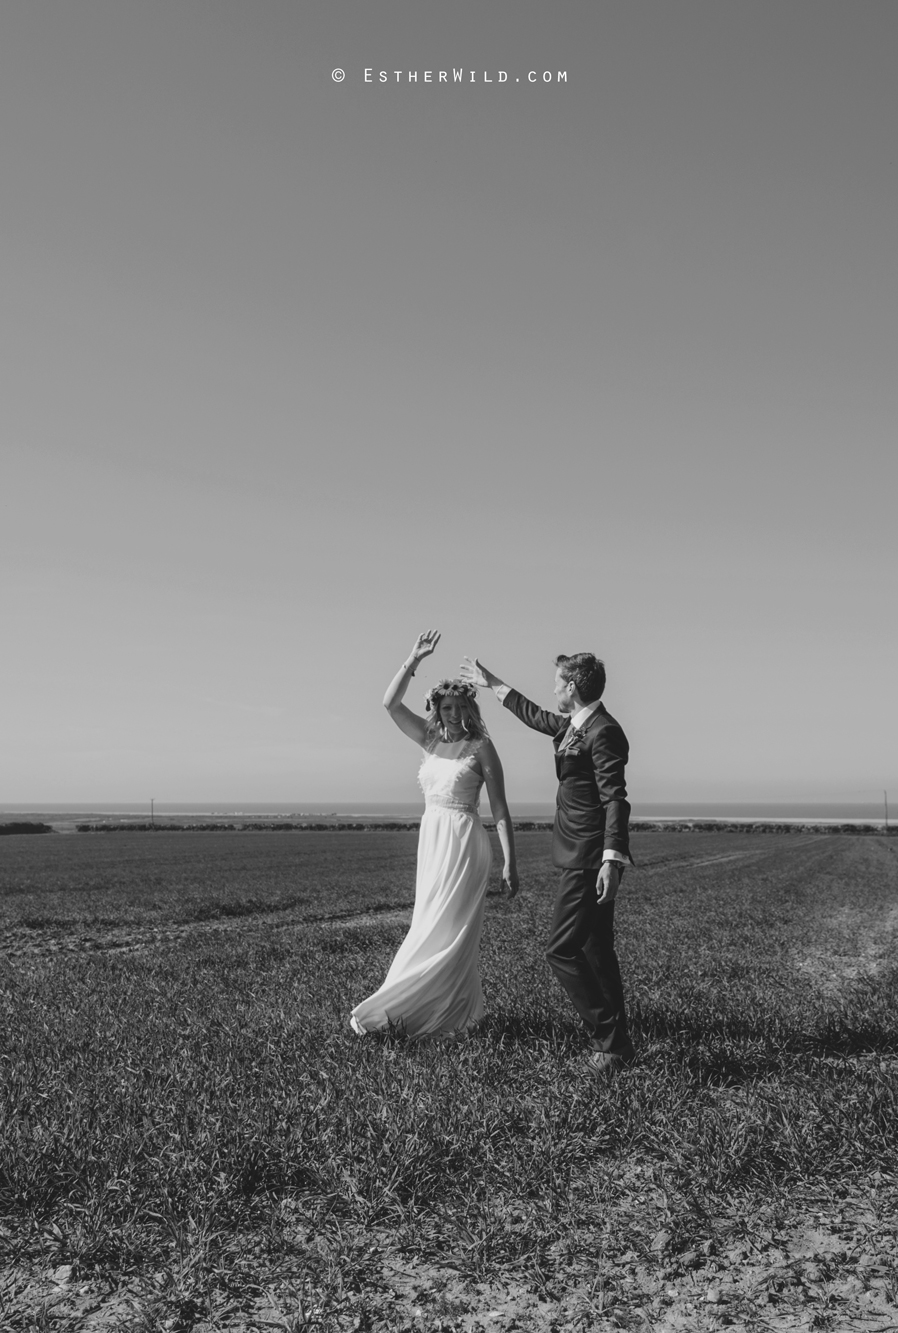 IMG_1482-1Cley_Barn_Drift_Norfolk_Coast_Wedding_Copyright_Esther_Wild_Photographer_.jpg